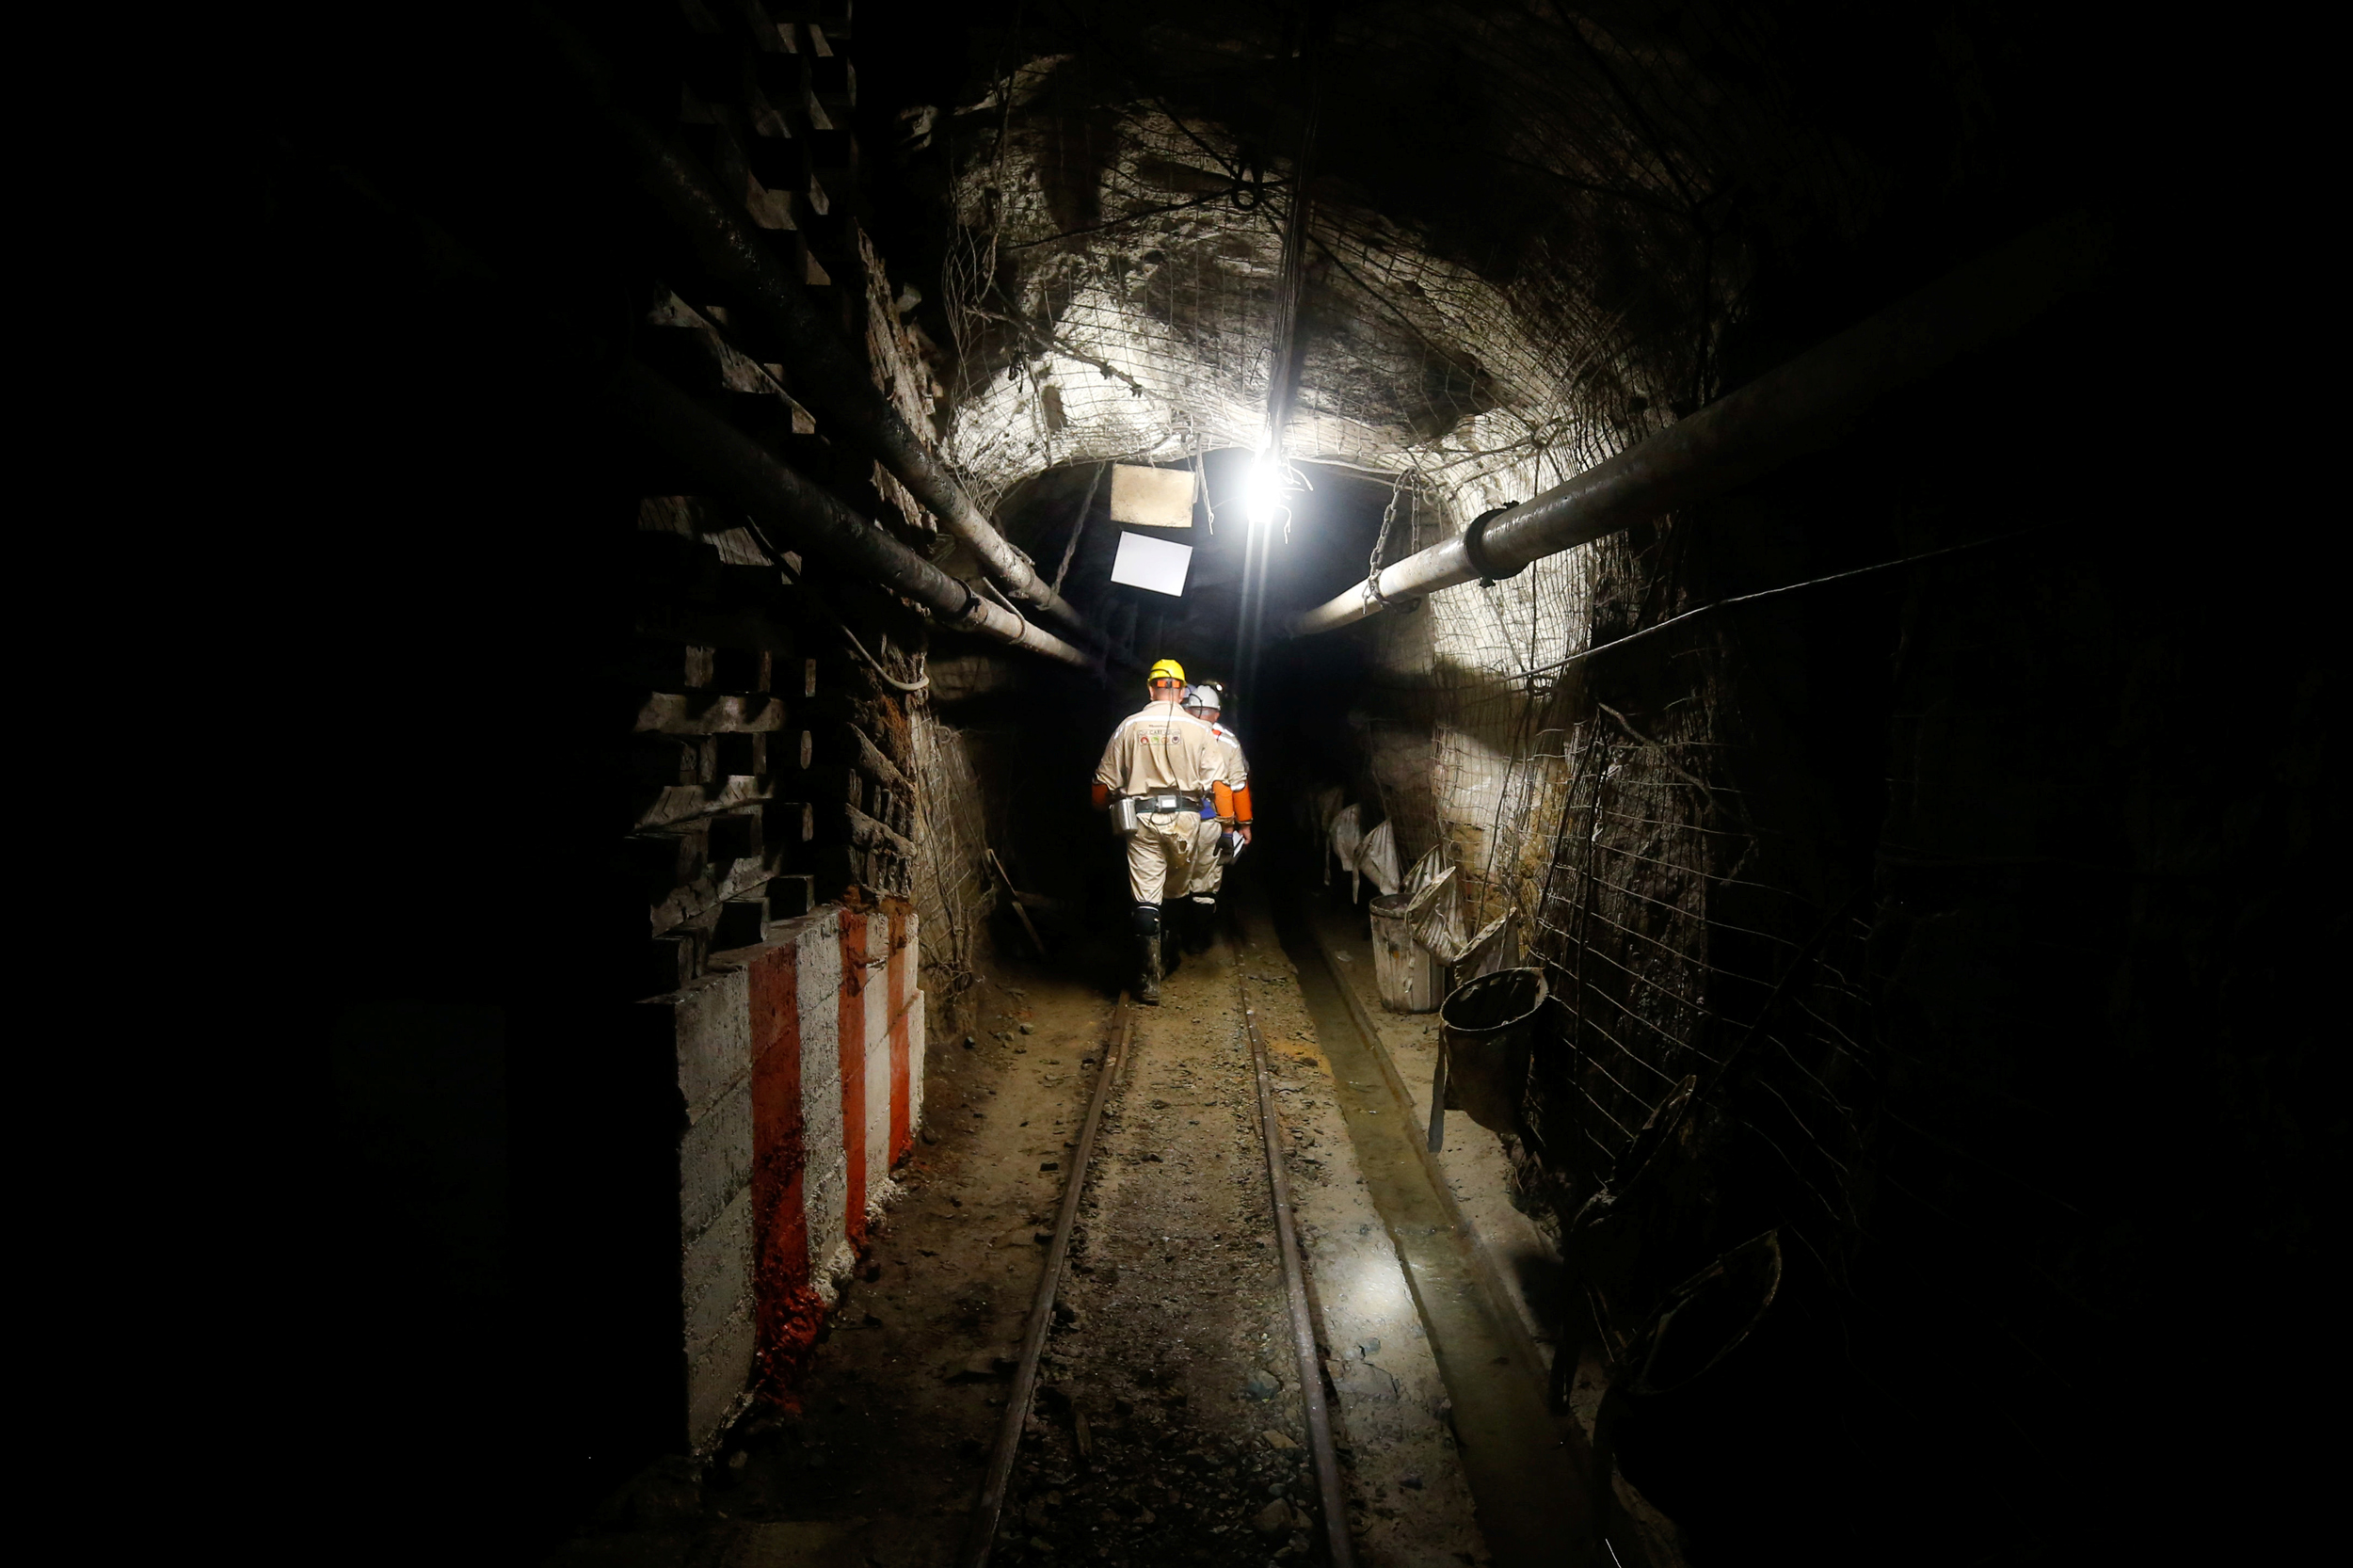 Over 900 gold miners in South Africa stuck underground